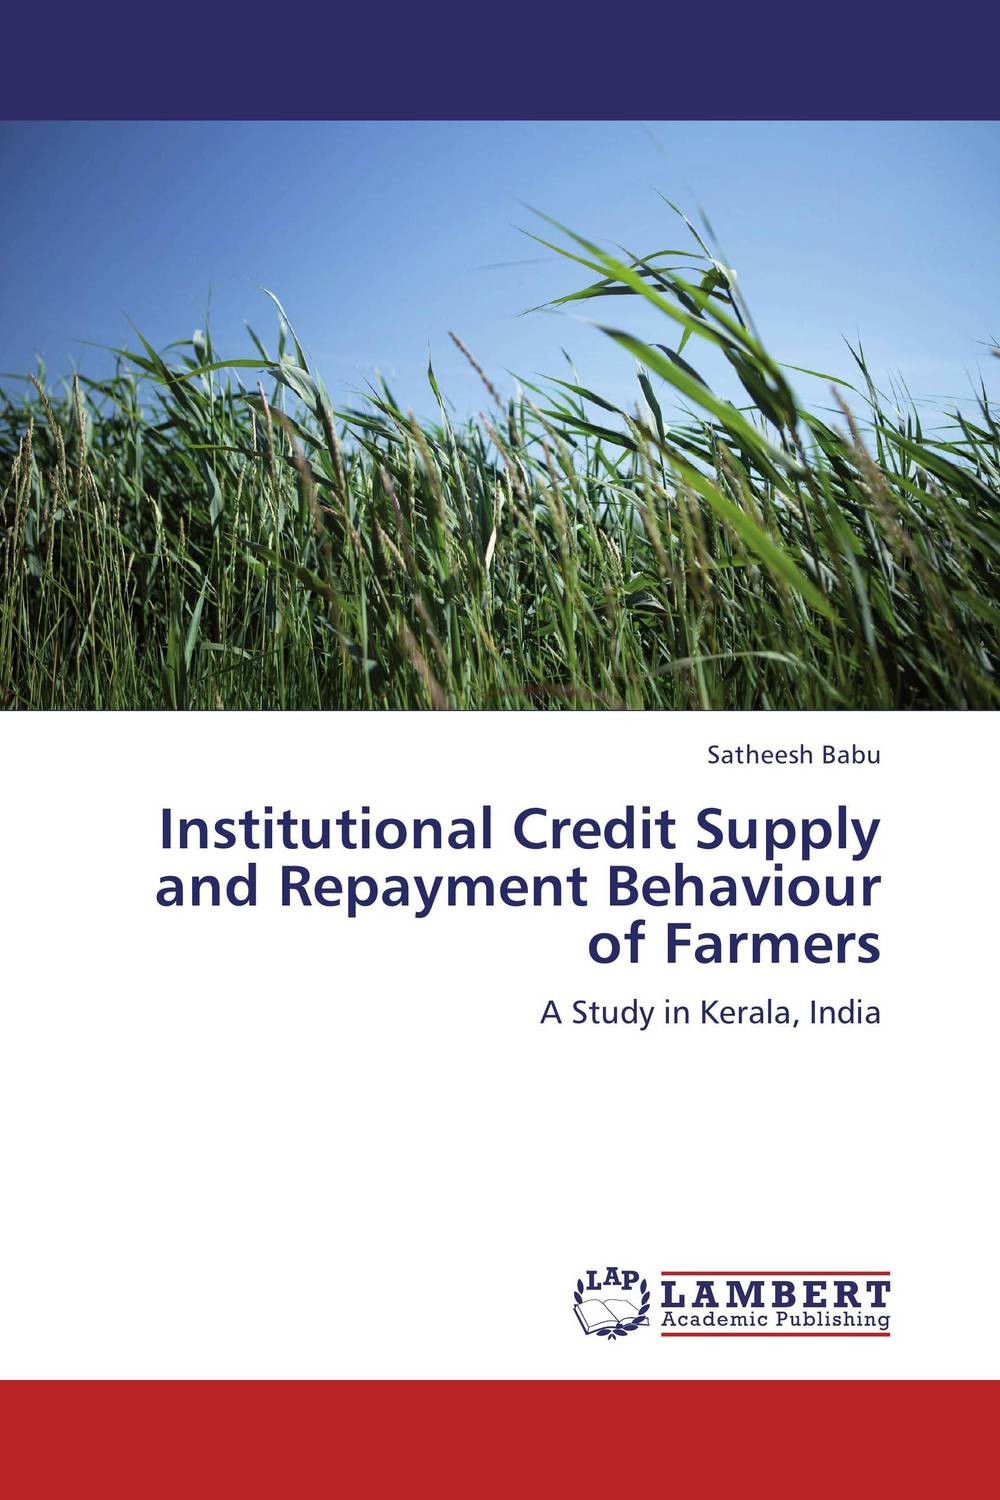 Institutional Credit Supply and Repayment Behaviour of Farmers nagasa dida zewdie birhanu and dejen tilahun determinants of institutional delivery among antenatal care followers